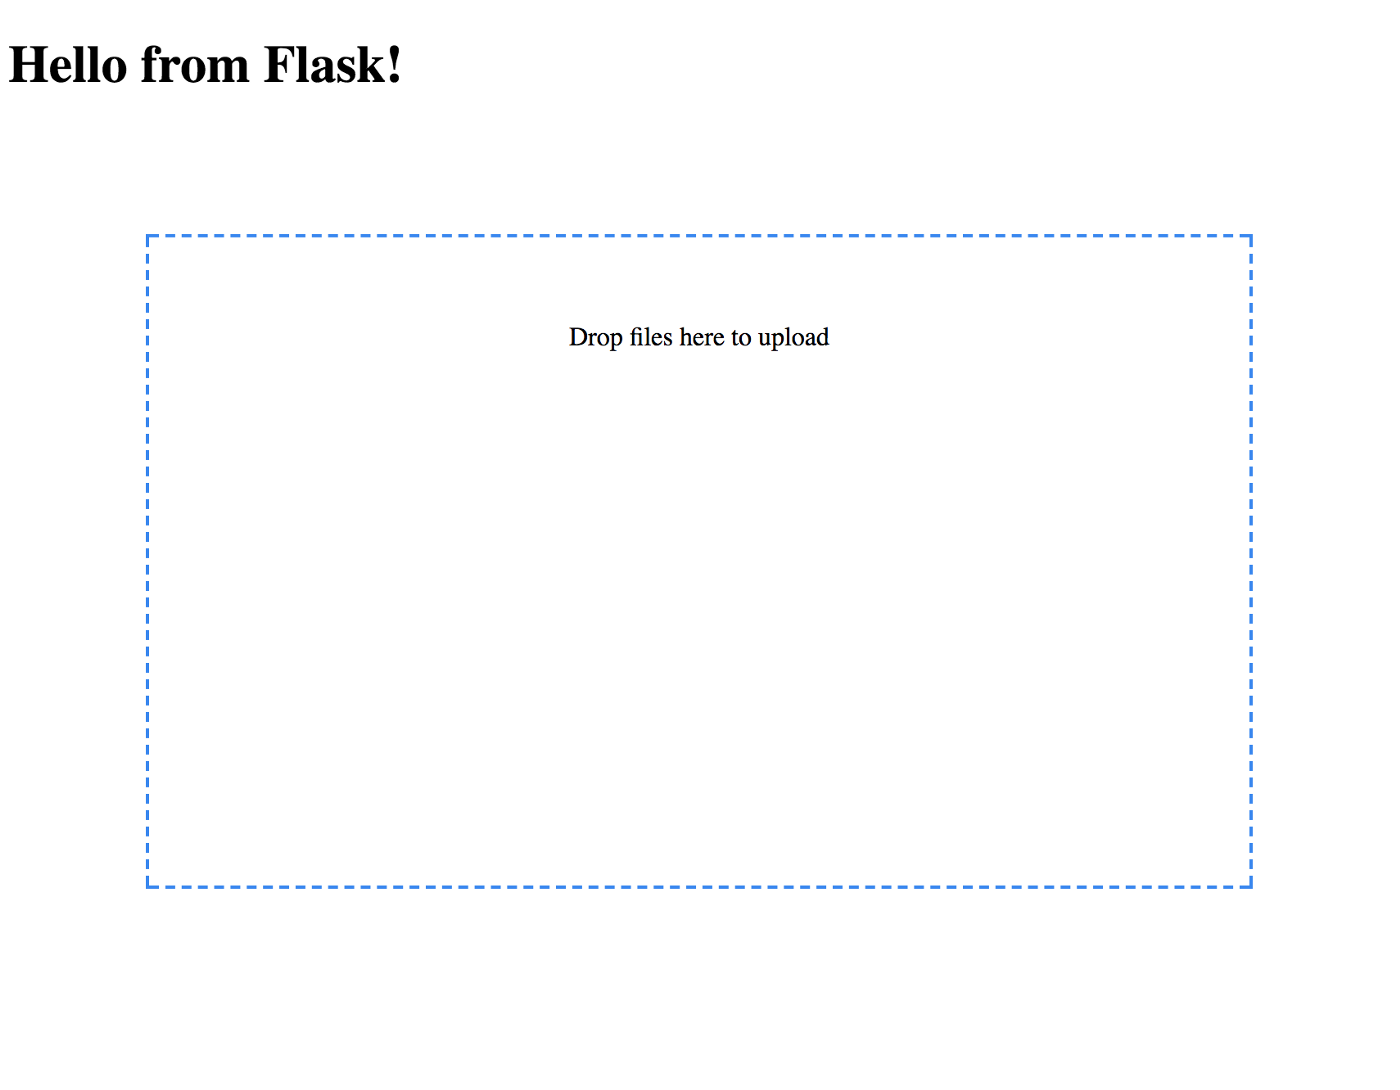 Upload multiple images with Python, Flask and Flask-Dropzone